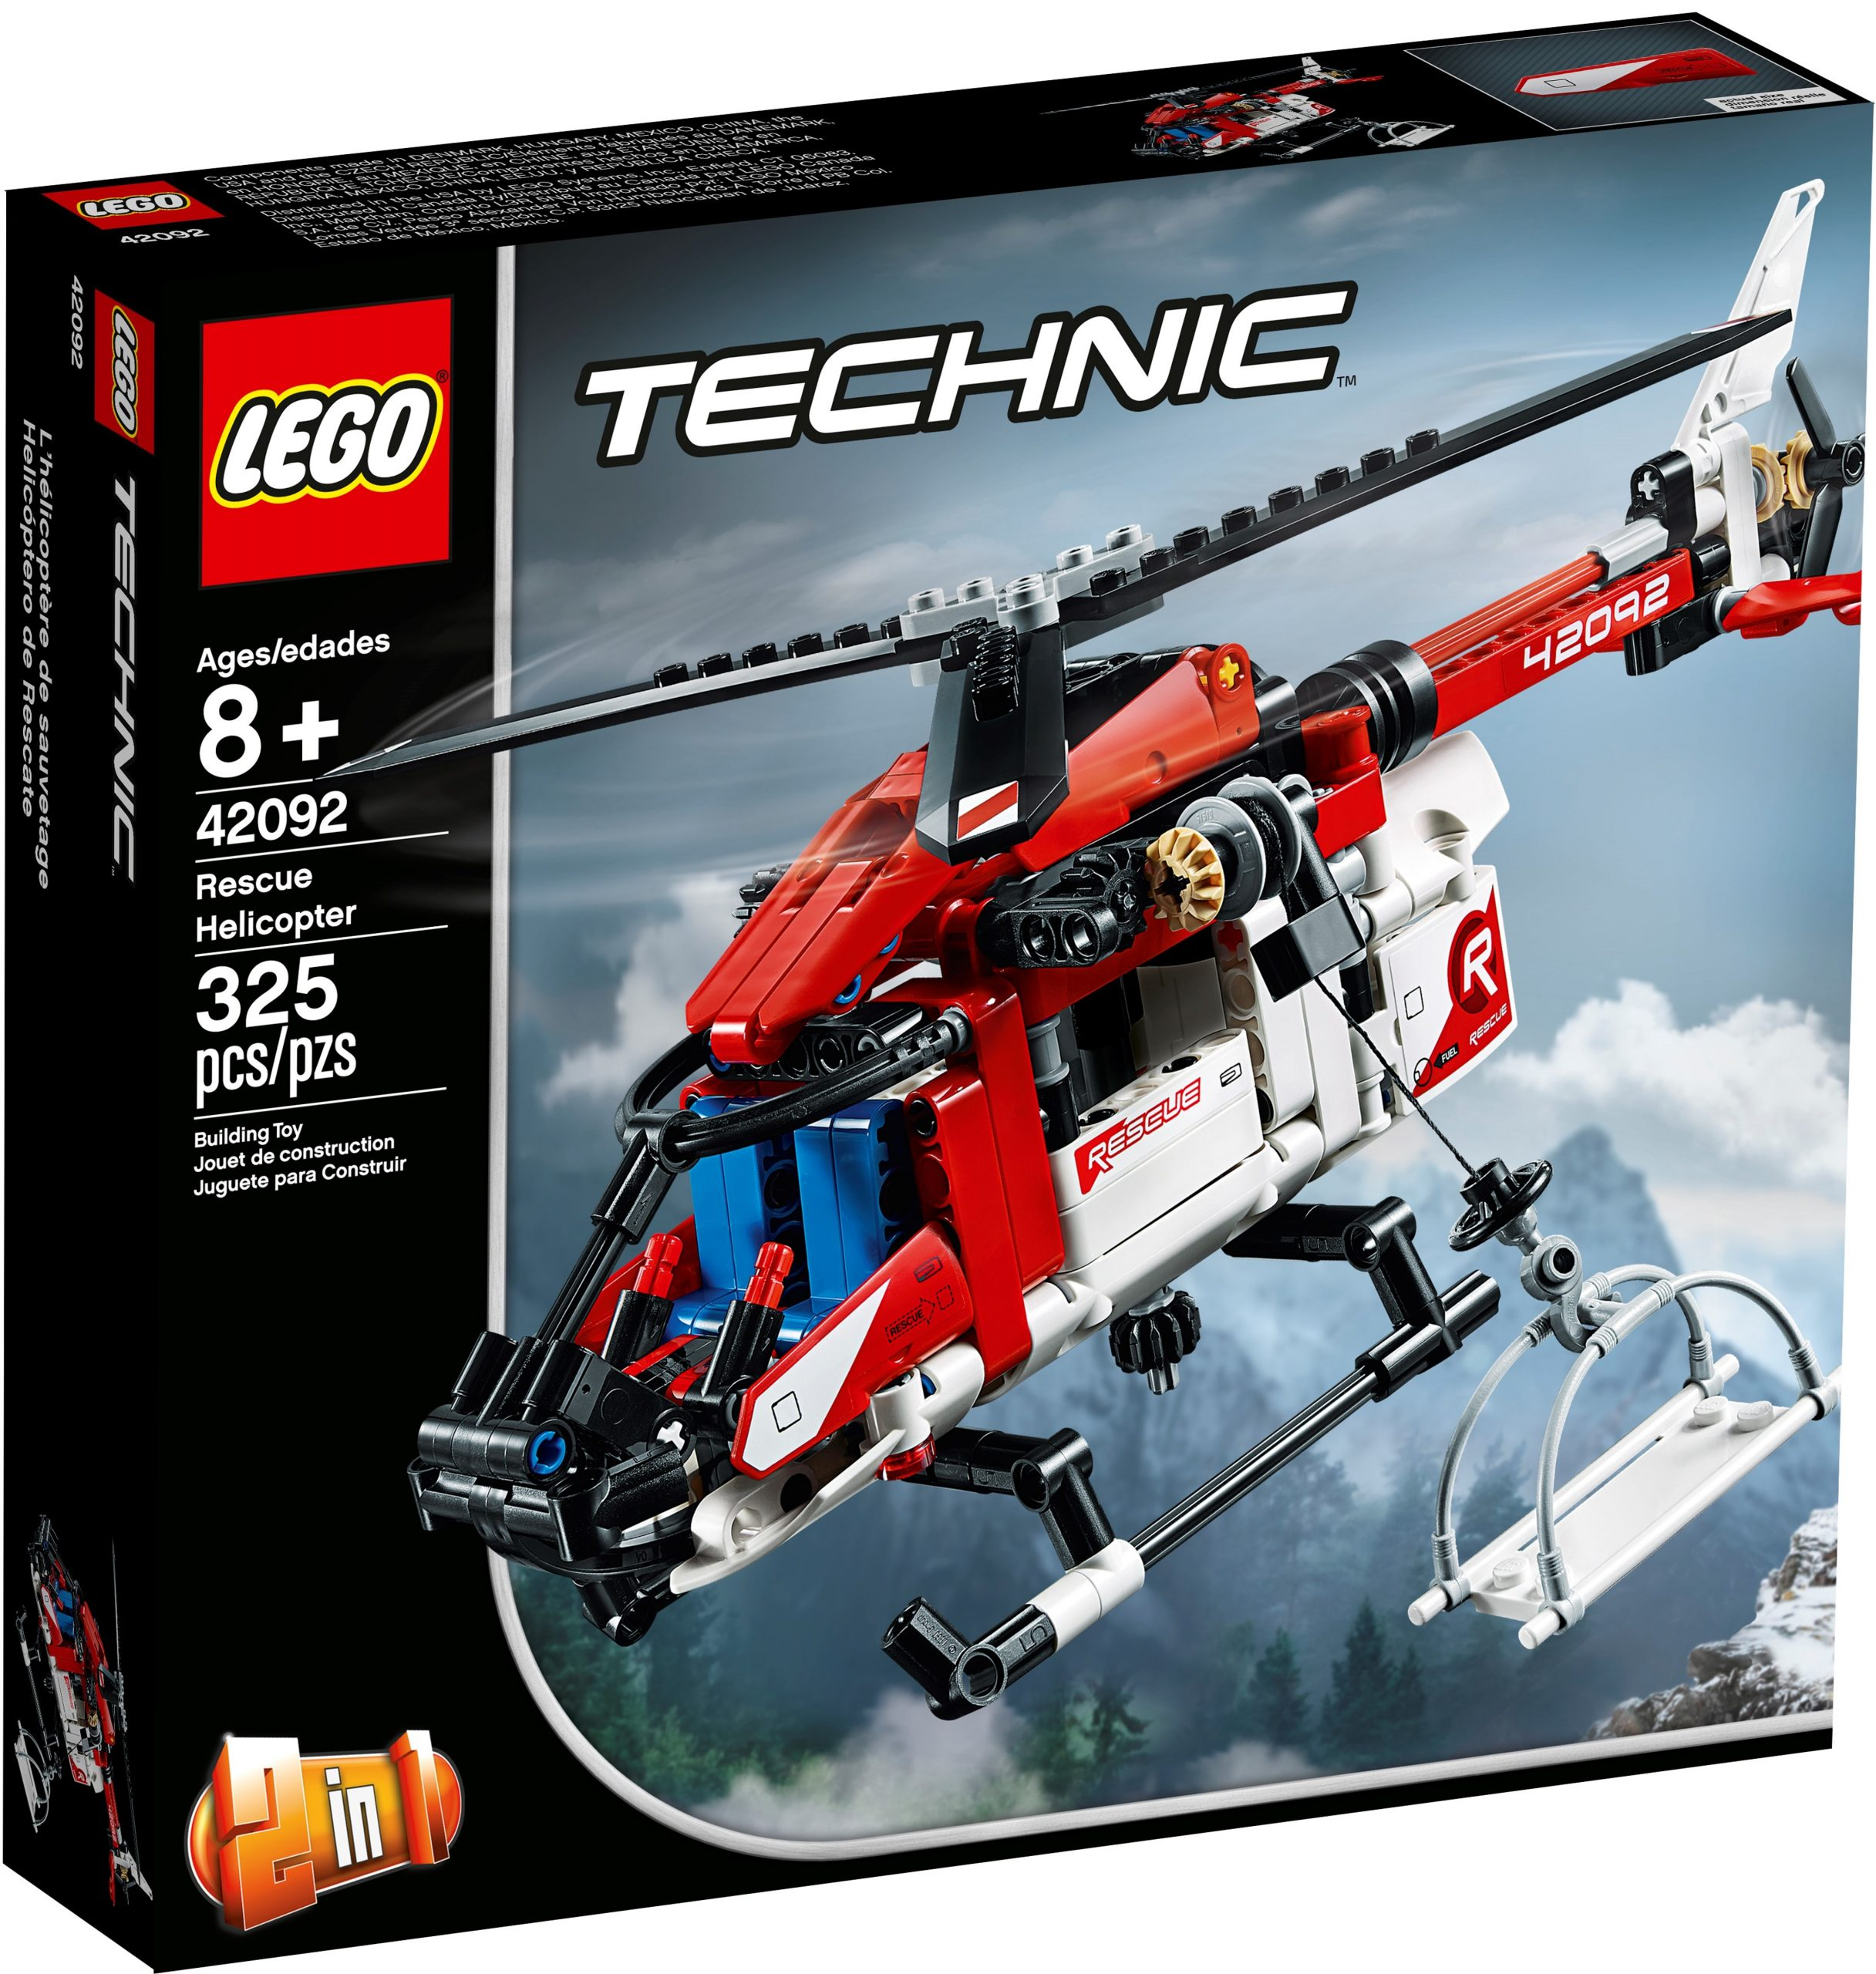 lego 42092 rescue helicopter scaled